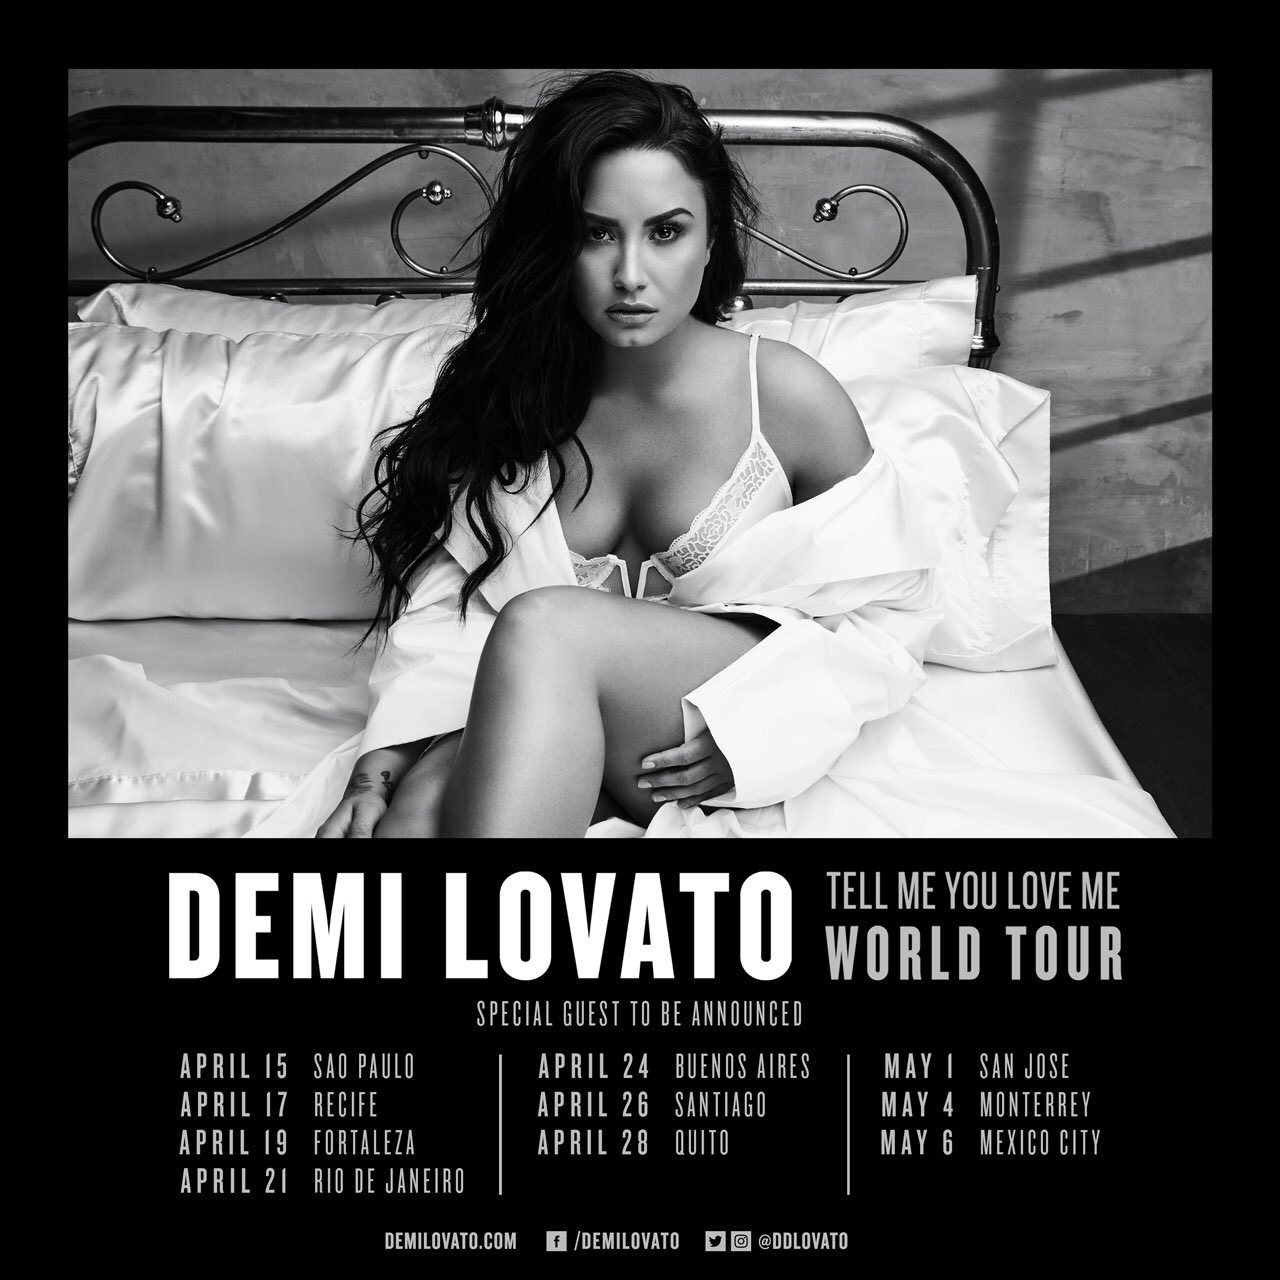 Mexico ���� It's your turn!! Tickets for the #TellMeYouLoveMeTour are on sale now ❤️ https://t.co/FdRYQe0I9Y https://t.co/tUSigBlcBW